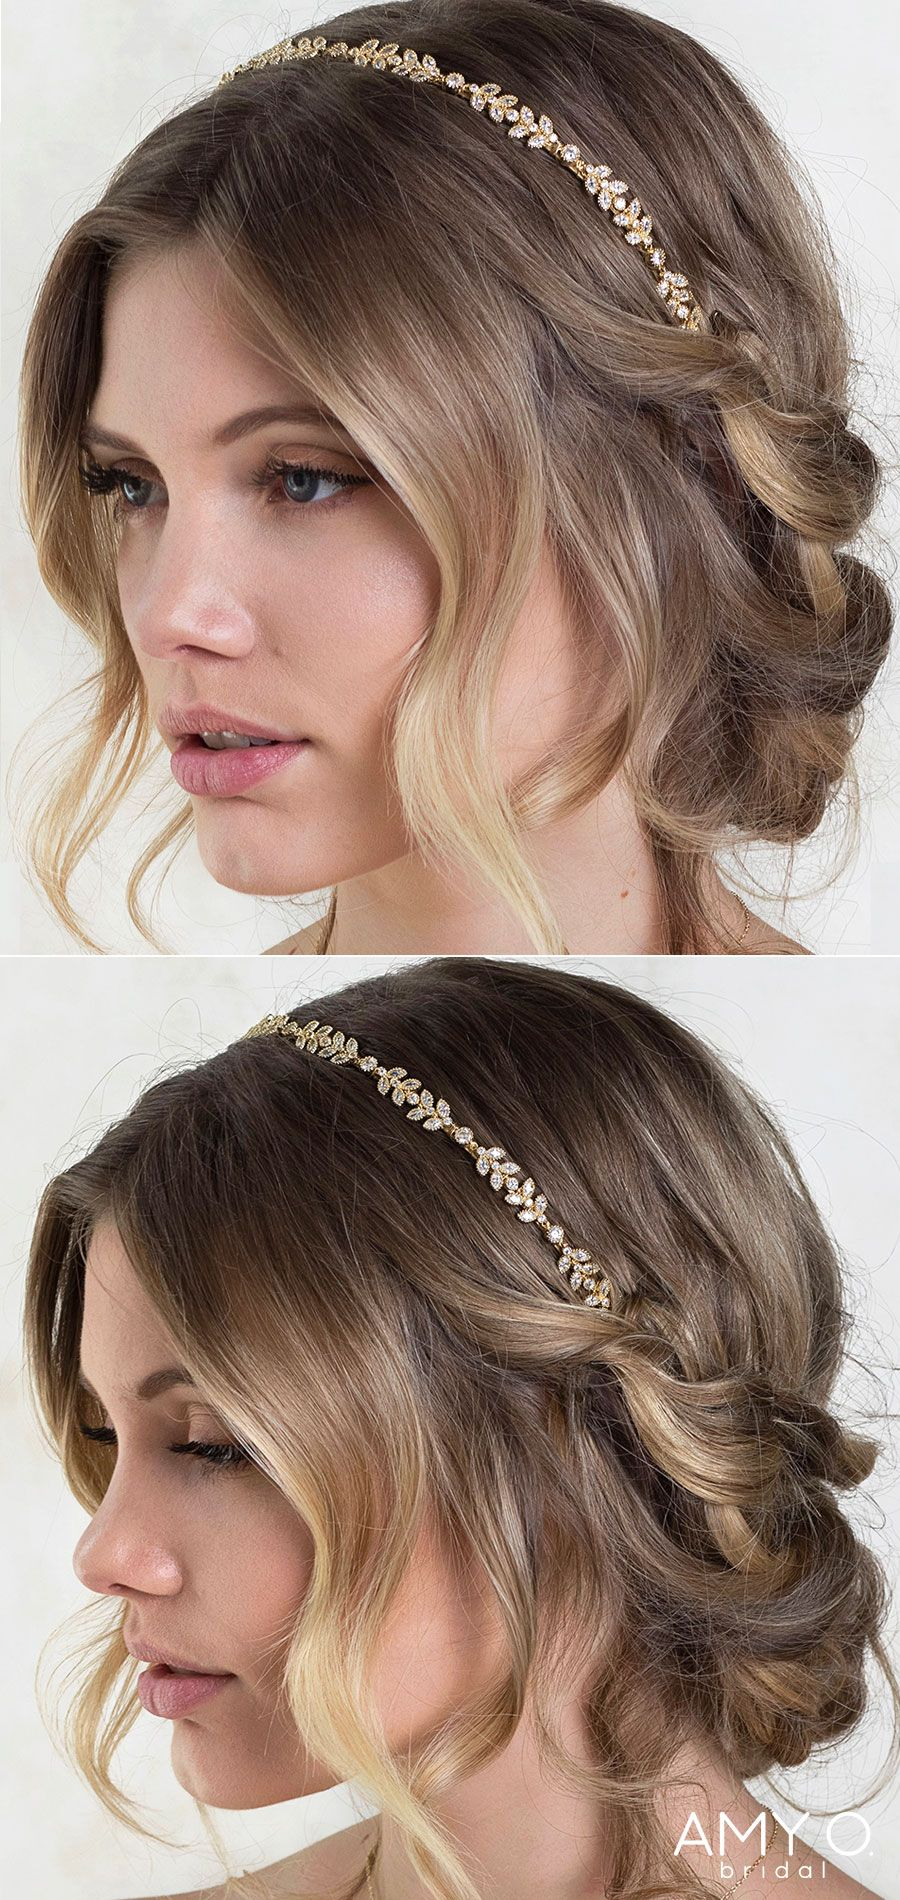 Boho Crystal Leaf Vine Headband Headband Hairstyles Wedding Hair Headband Long Hair Styles